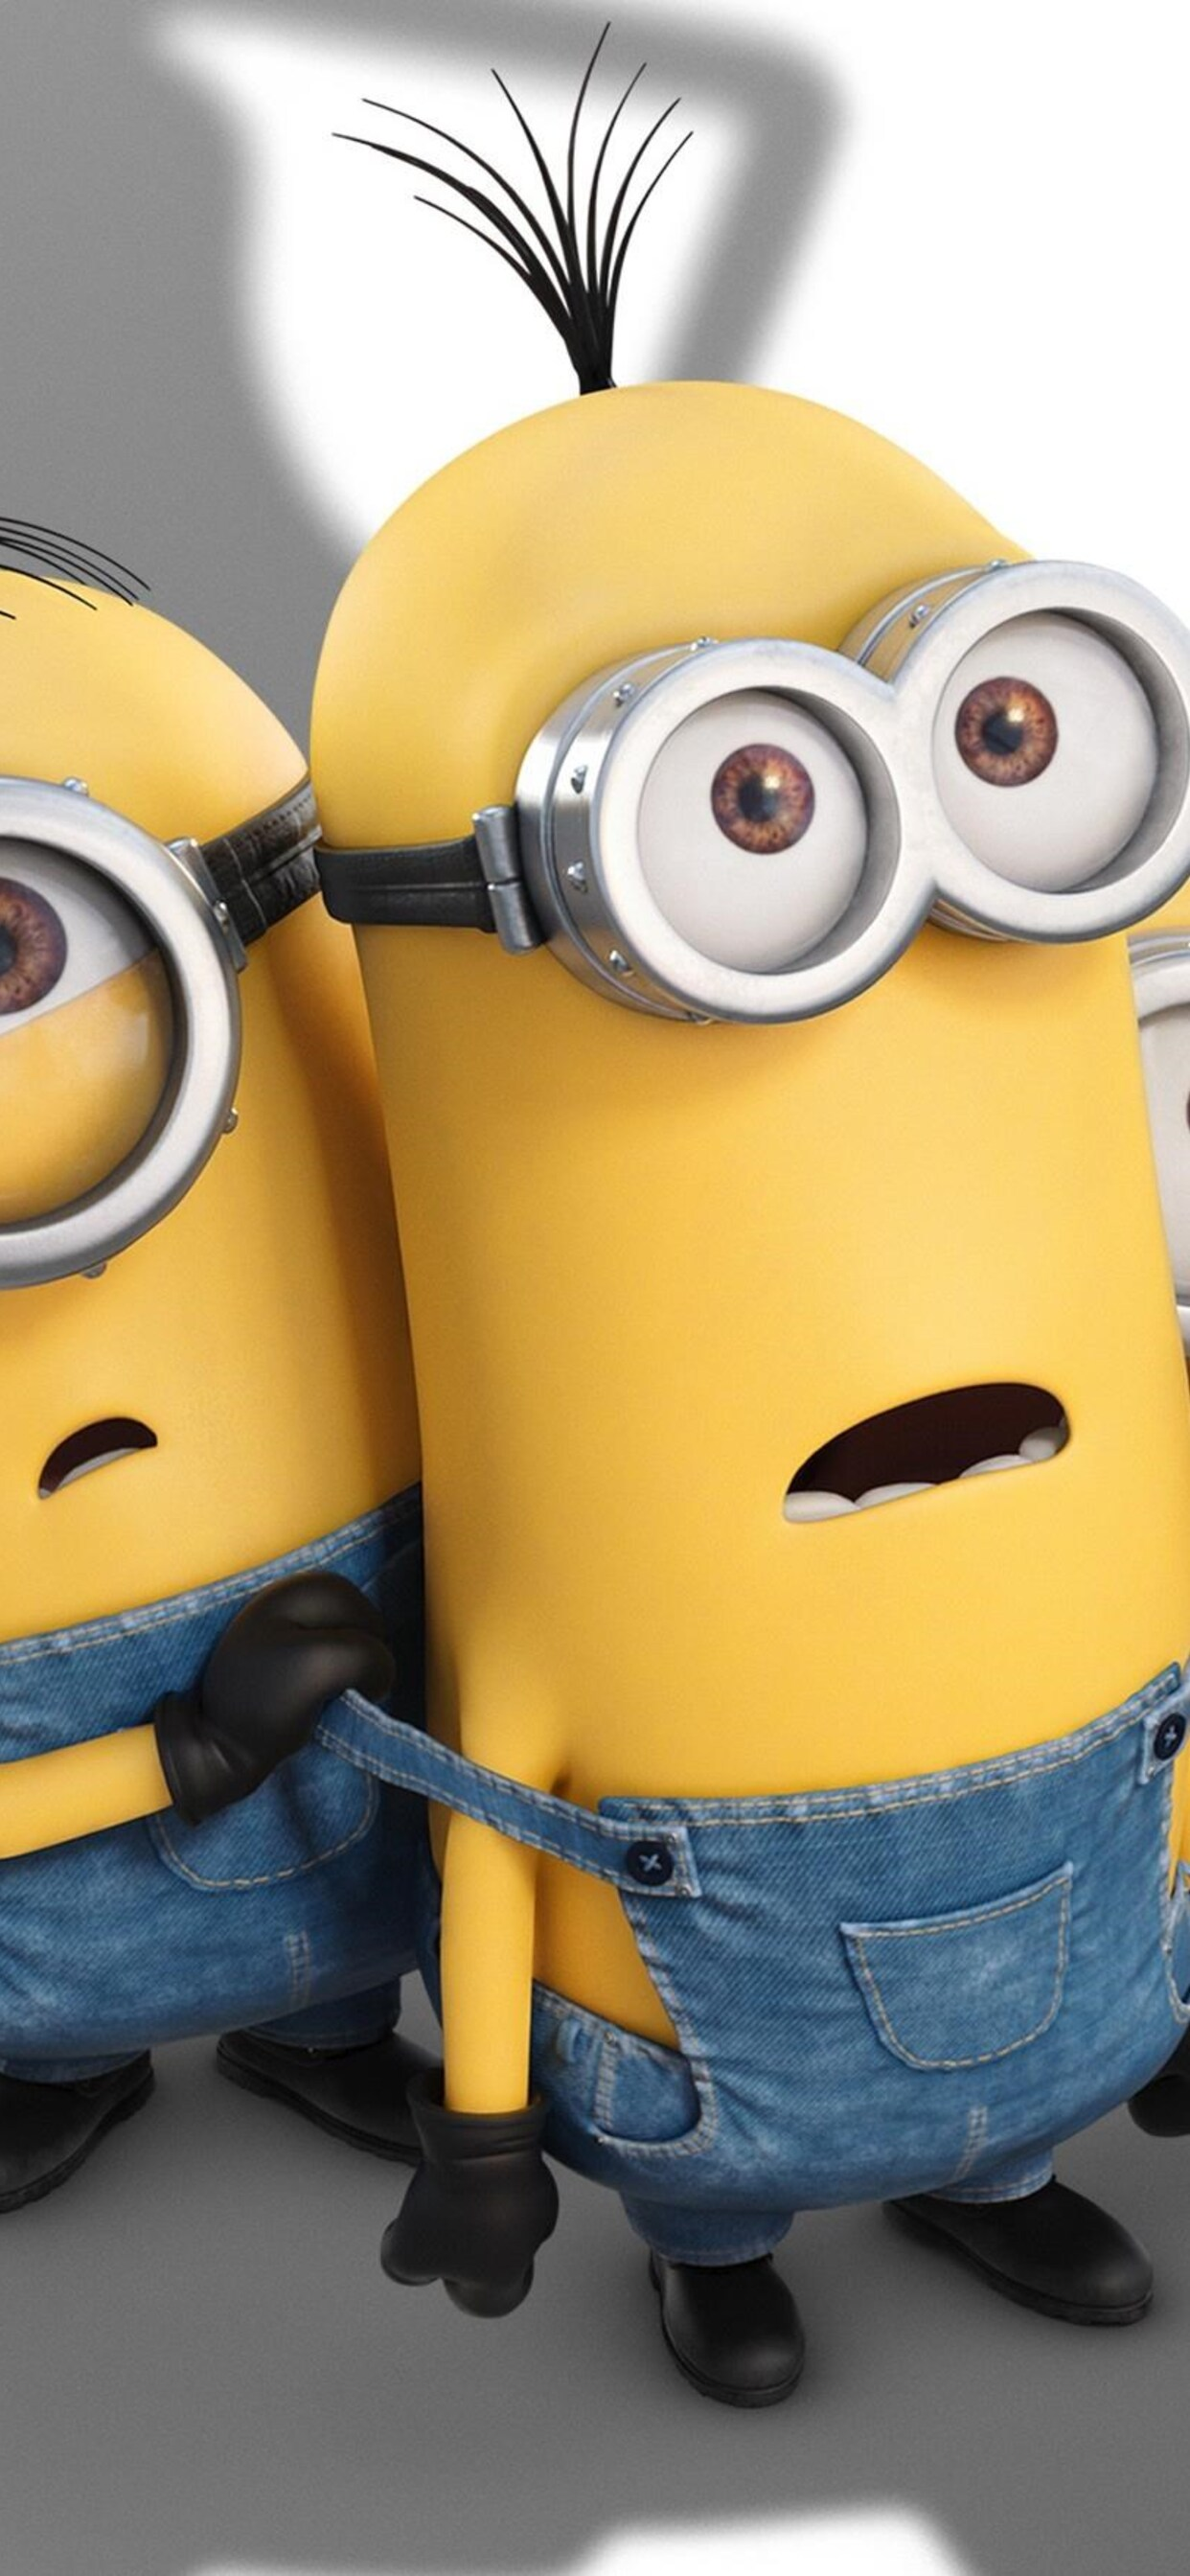 1242x2688 Cute Minions Iphone Xs Max Hd 4k Wallpapers Images